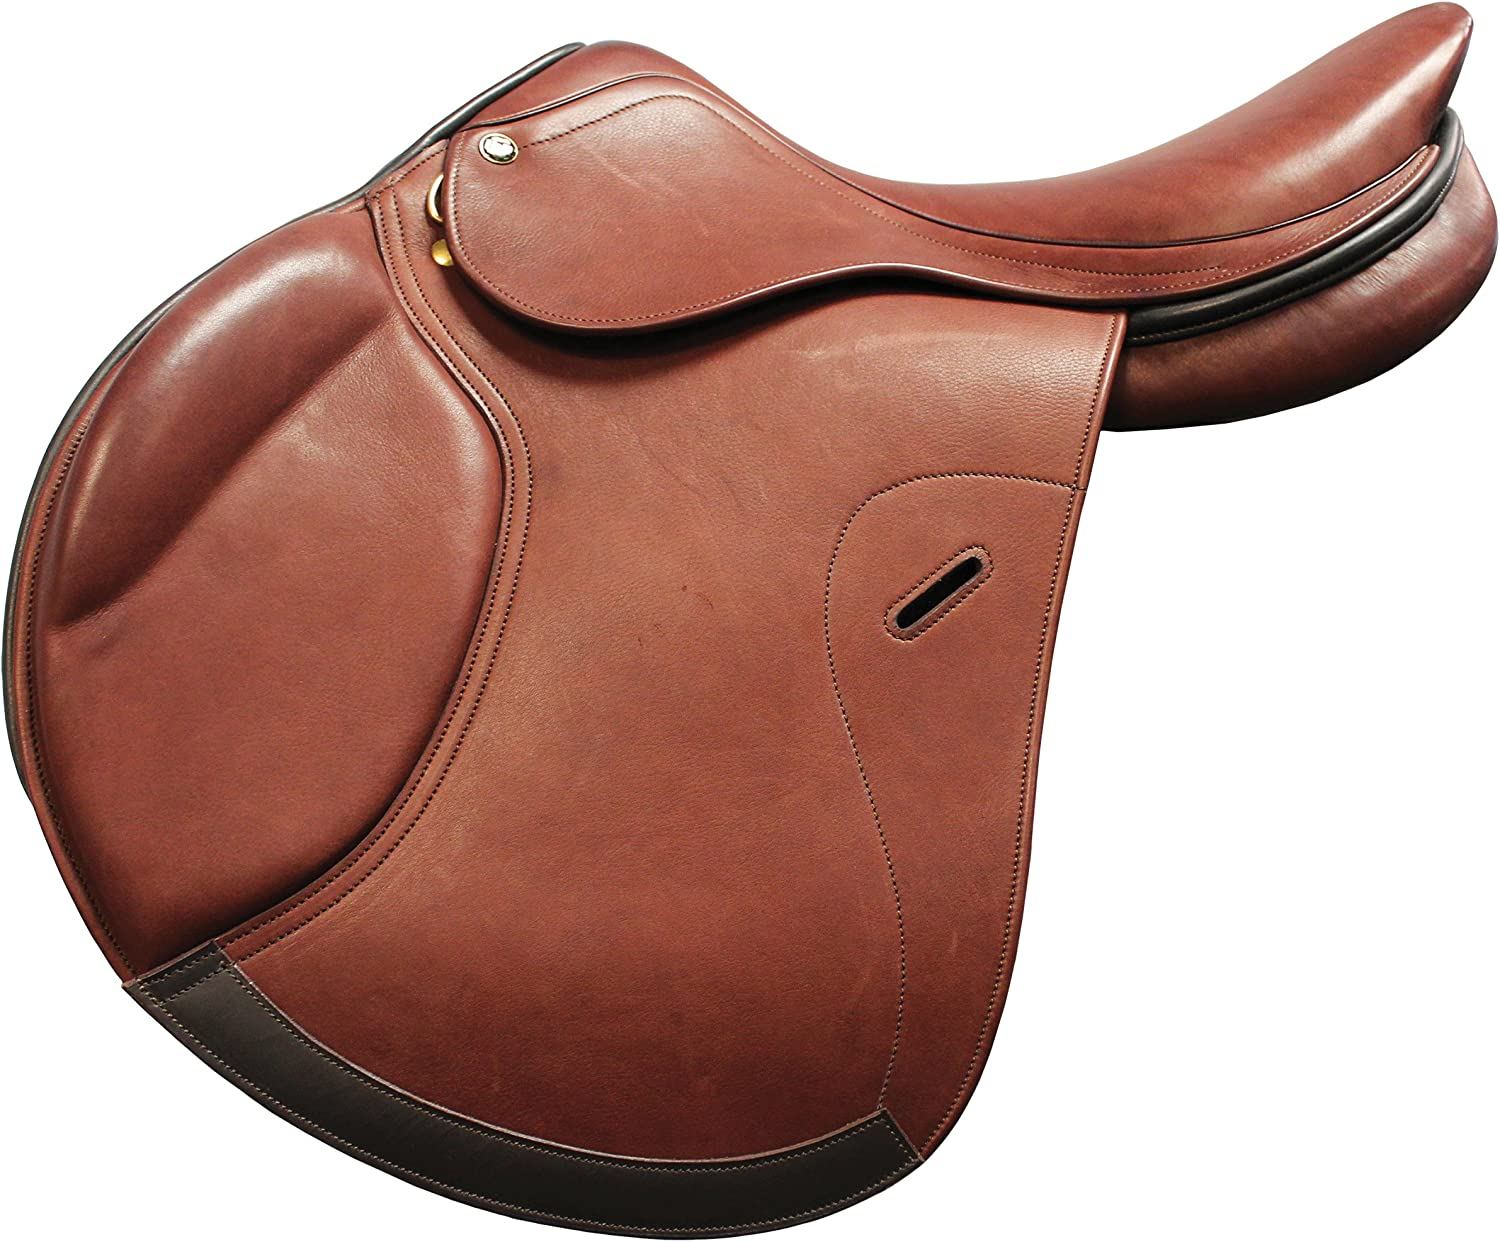 HDR Minimus Close Contact Covered Saddle